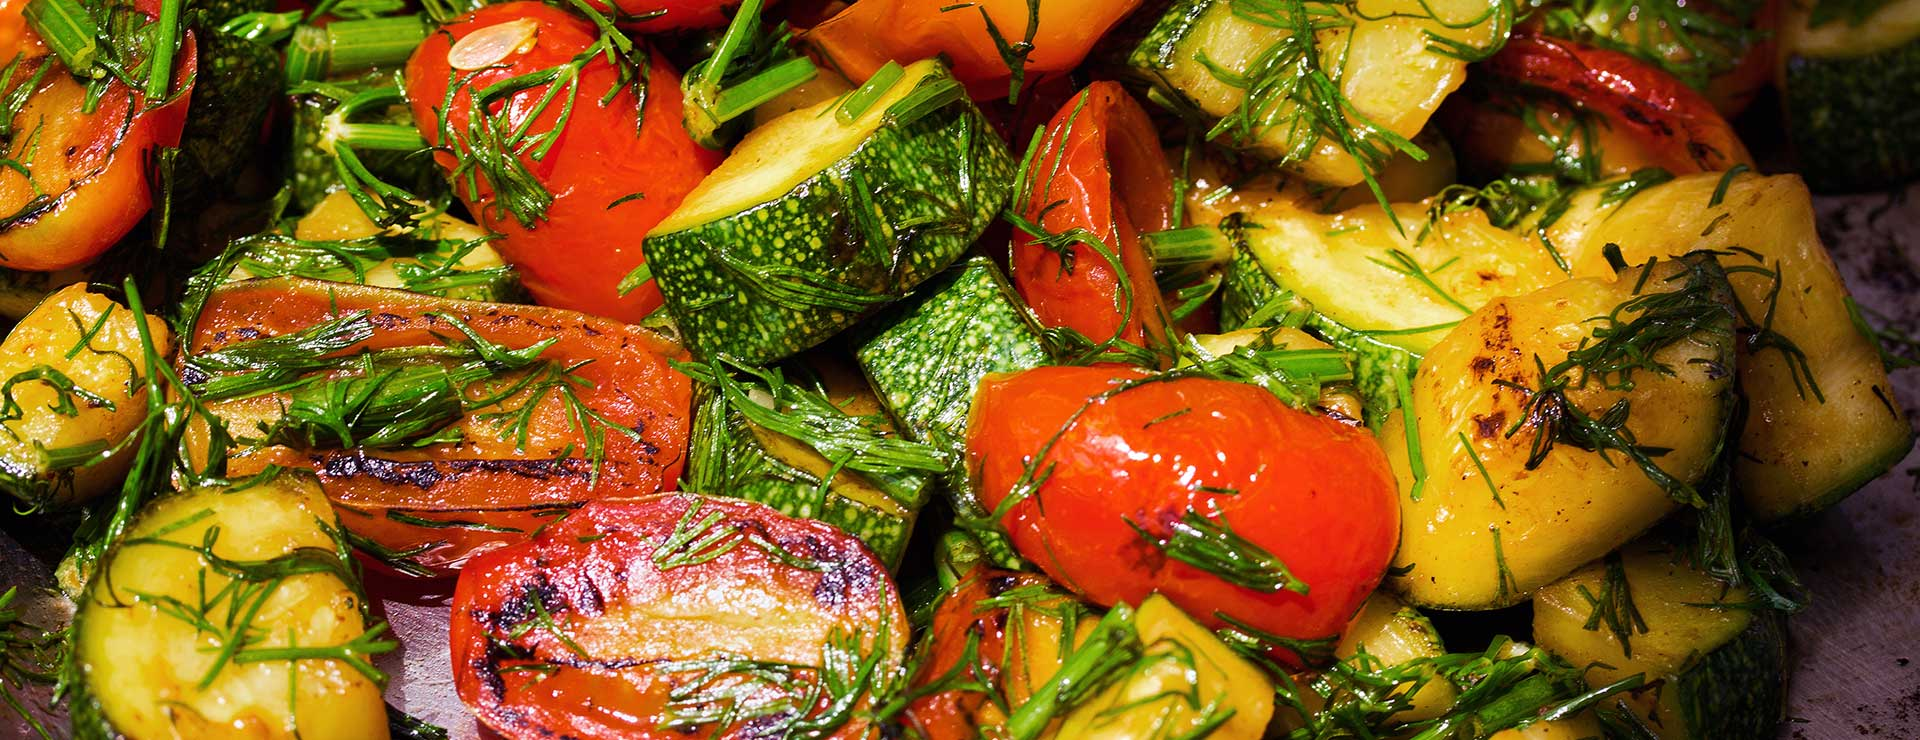 Sauteed summer squash and tomatoes.